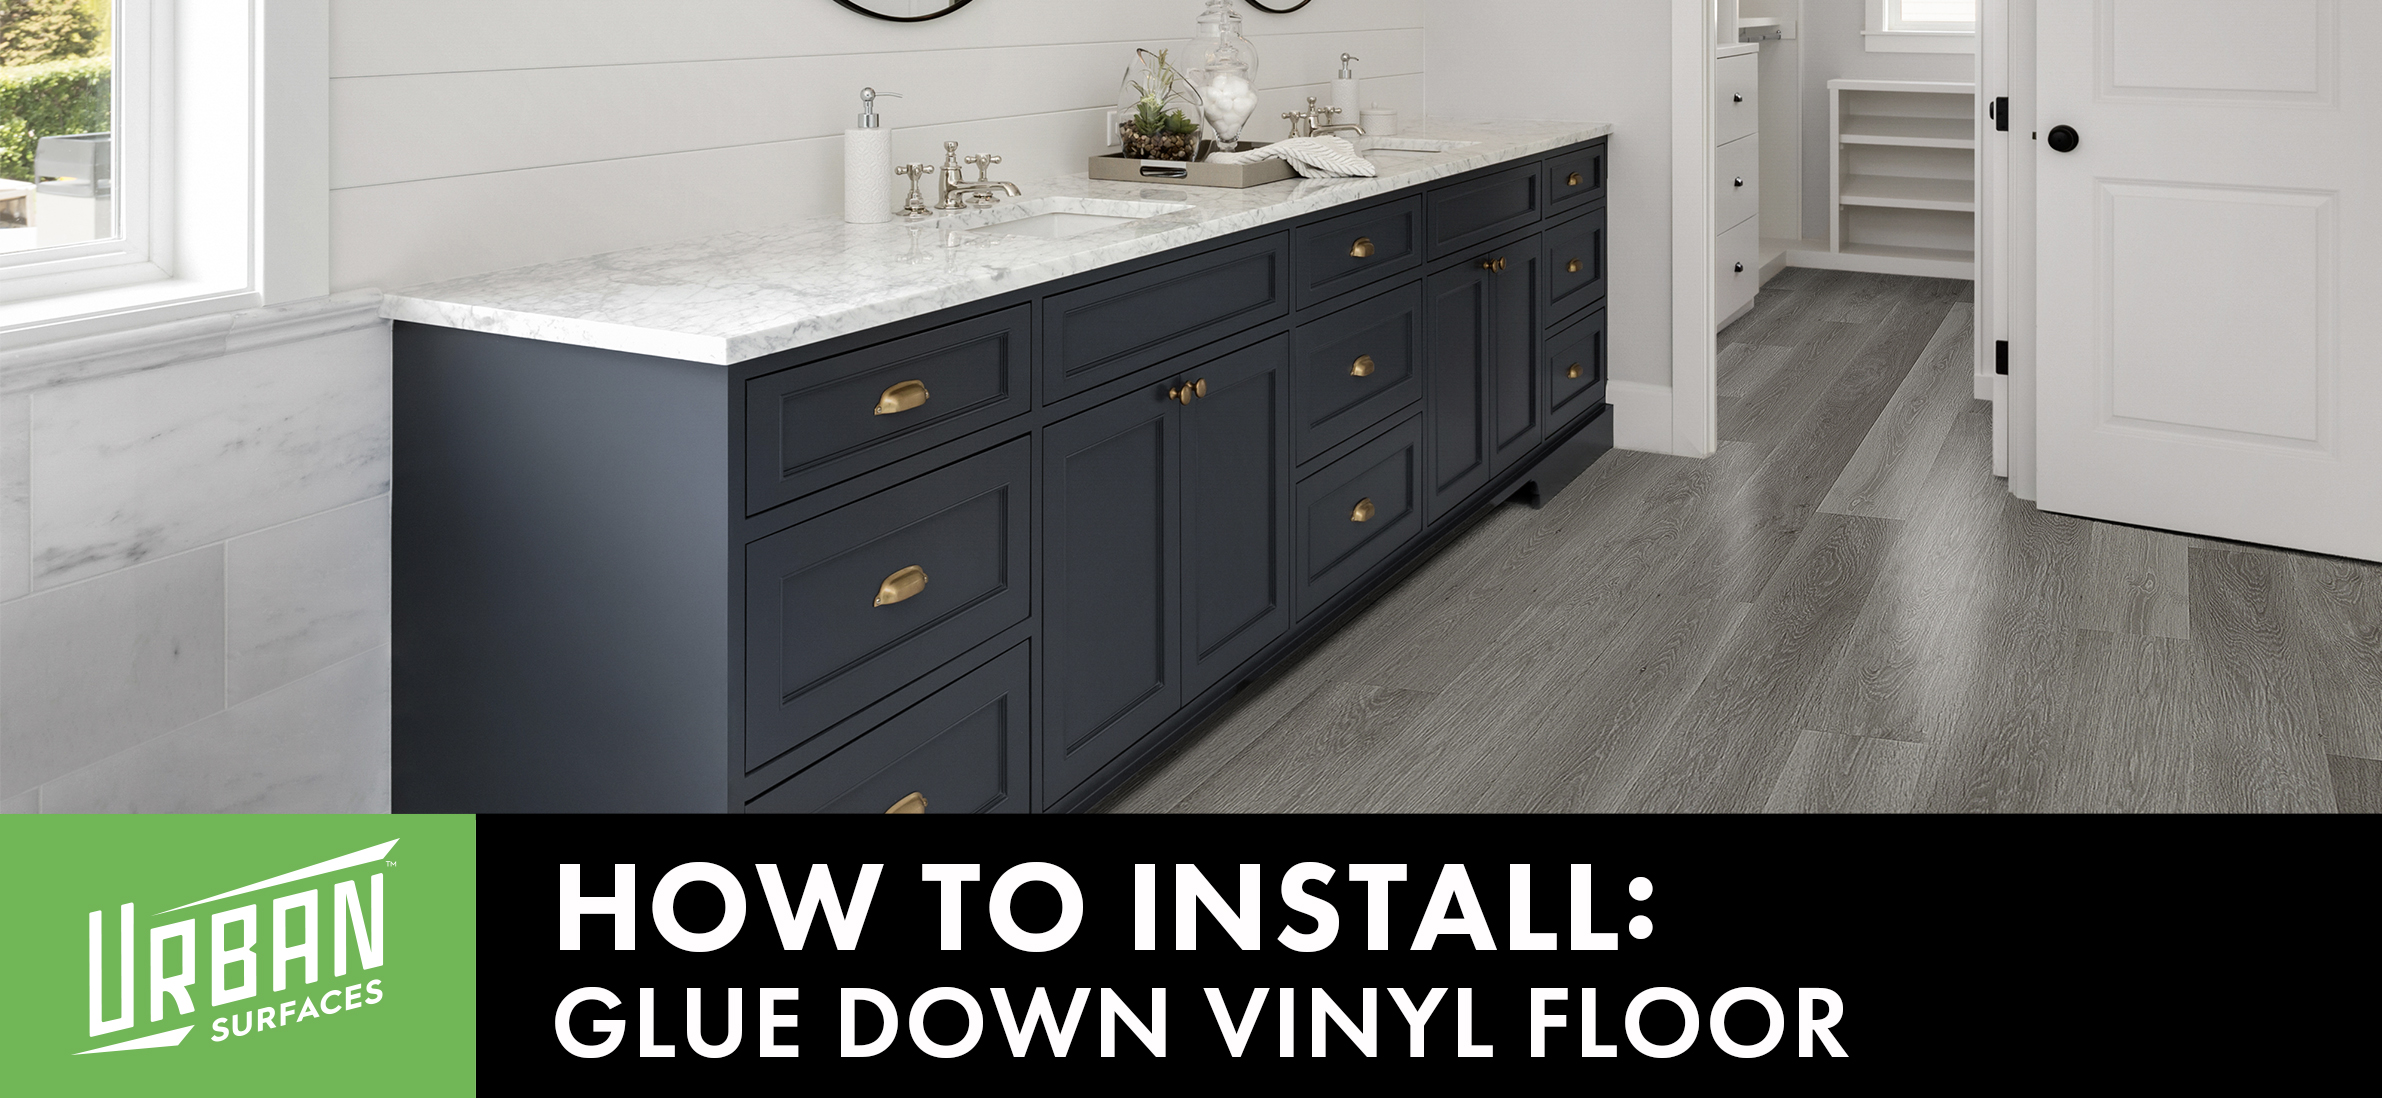 How to Install Our Glue Down Vinyl Flooring